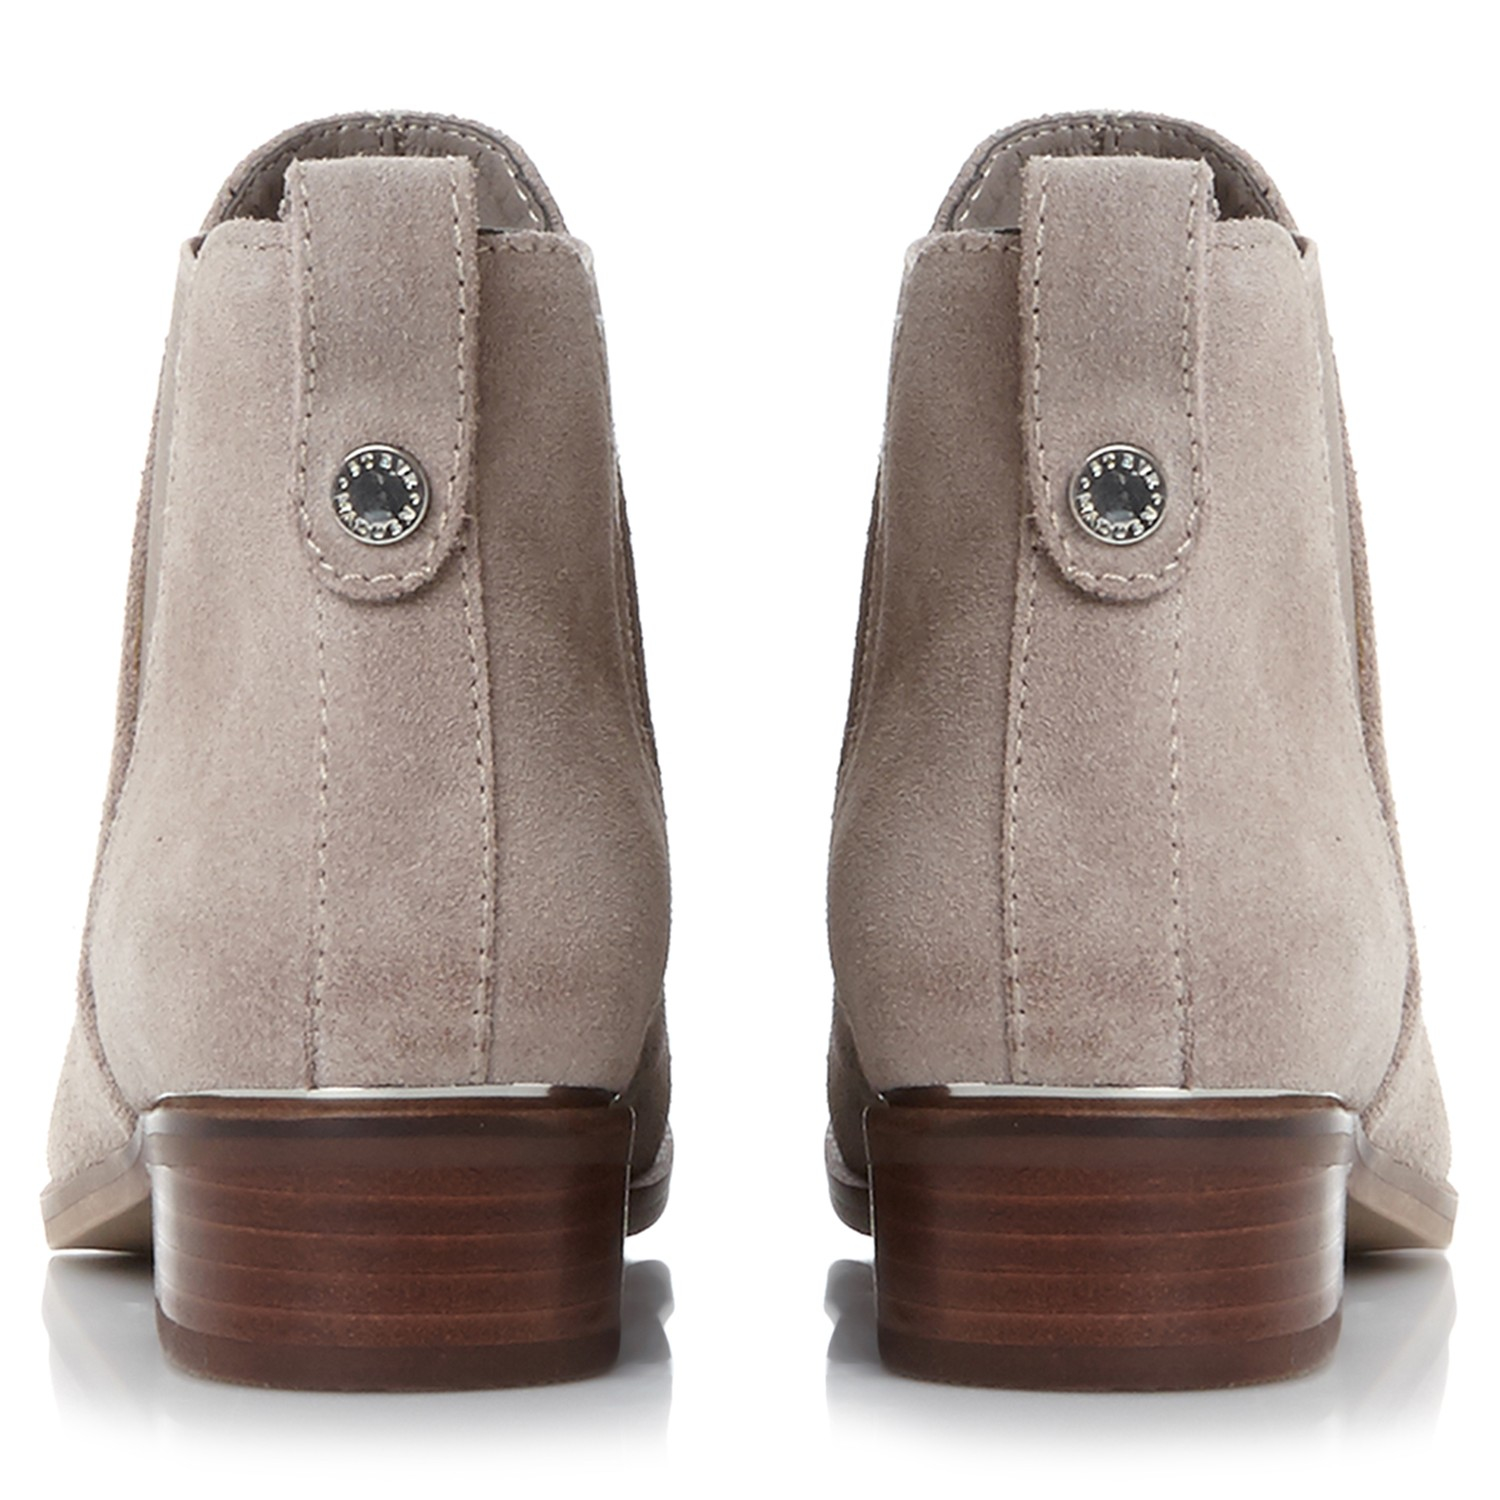 Steve Madden Denim Nickell Block Heeled Ankle Boots in Taupe (Brown)